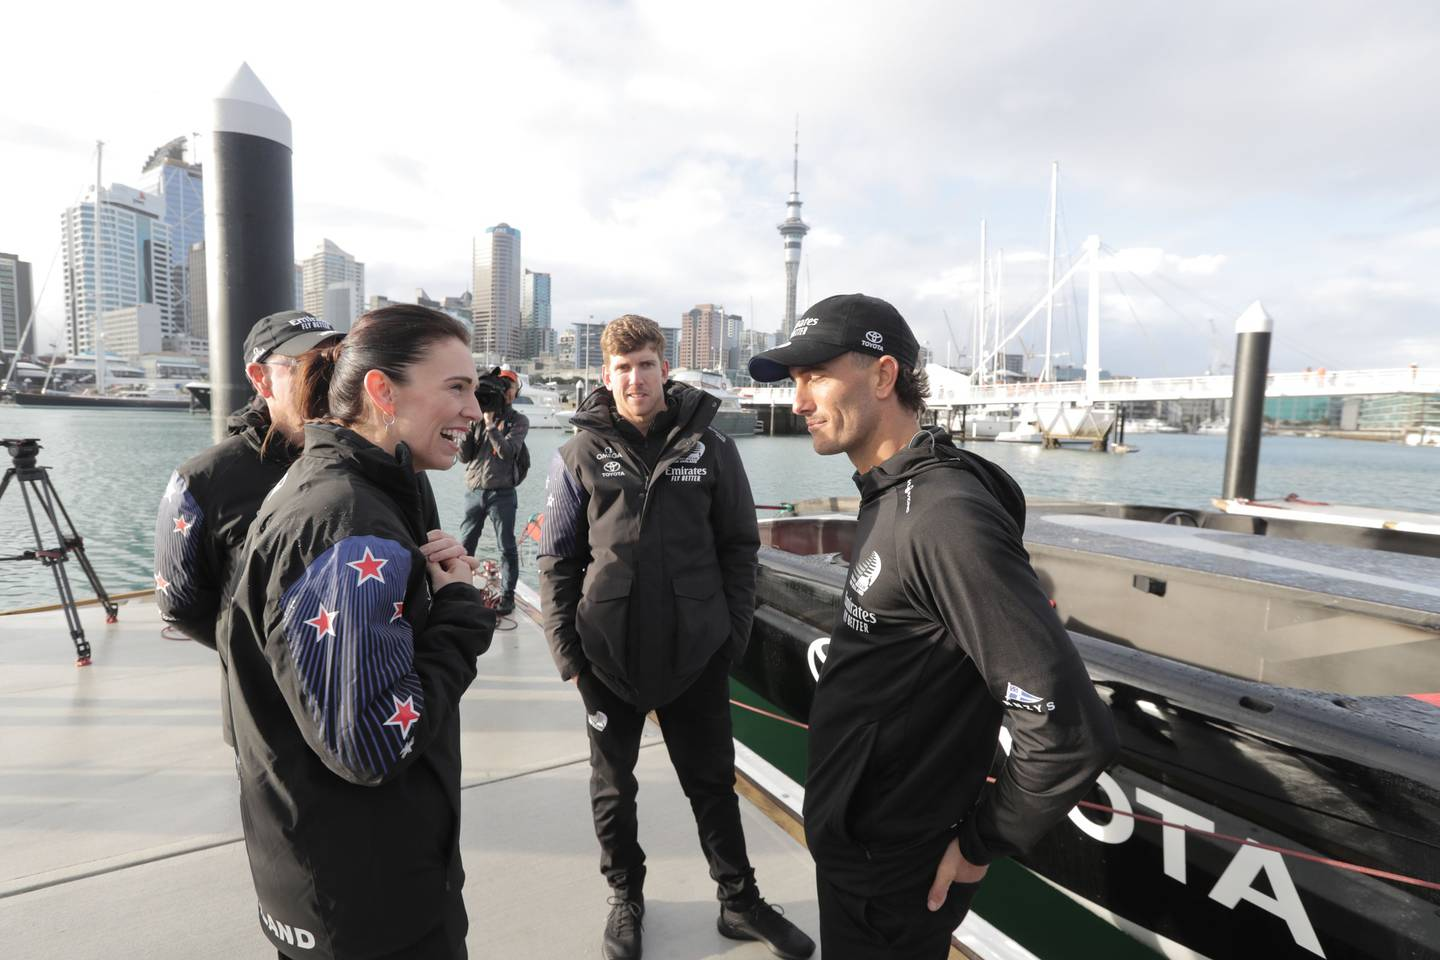 Prime Minister Jacinda Ardern was on hand for the launch. Photo: NZ Herald